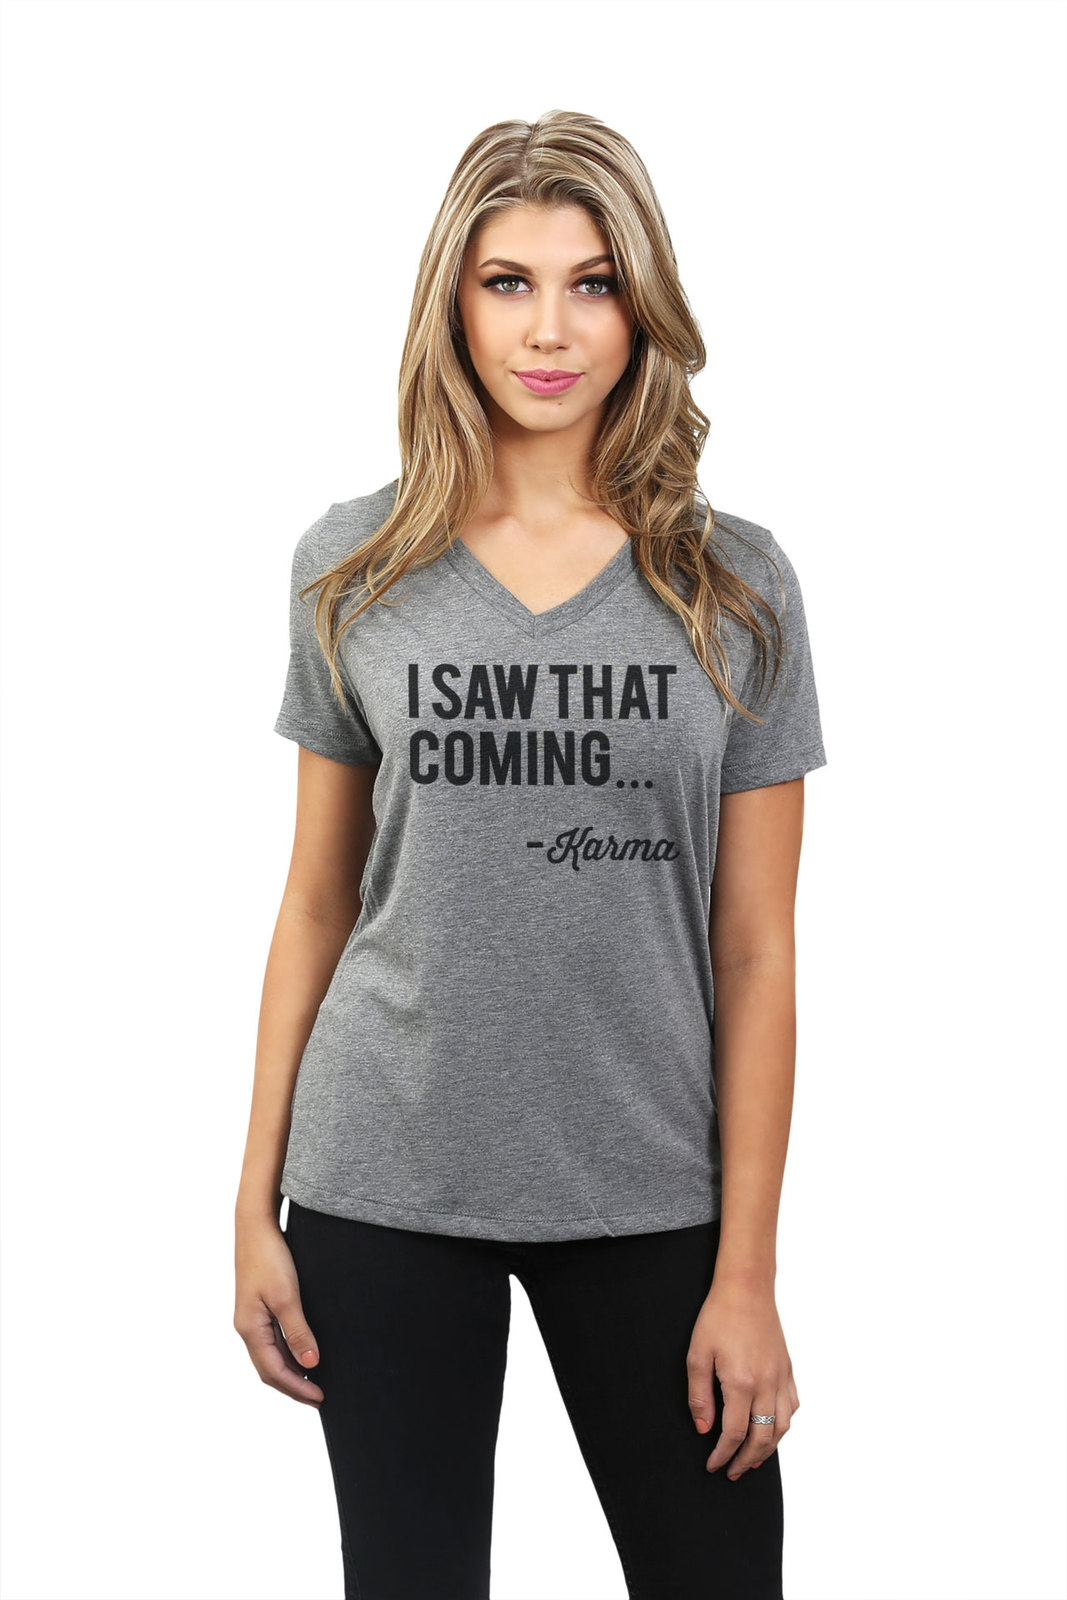 Thread Tank I Saw That Coming Karma Women's Relaxed V-Neck T-Shirt Tee Heather G